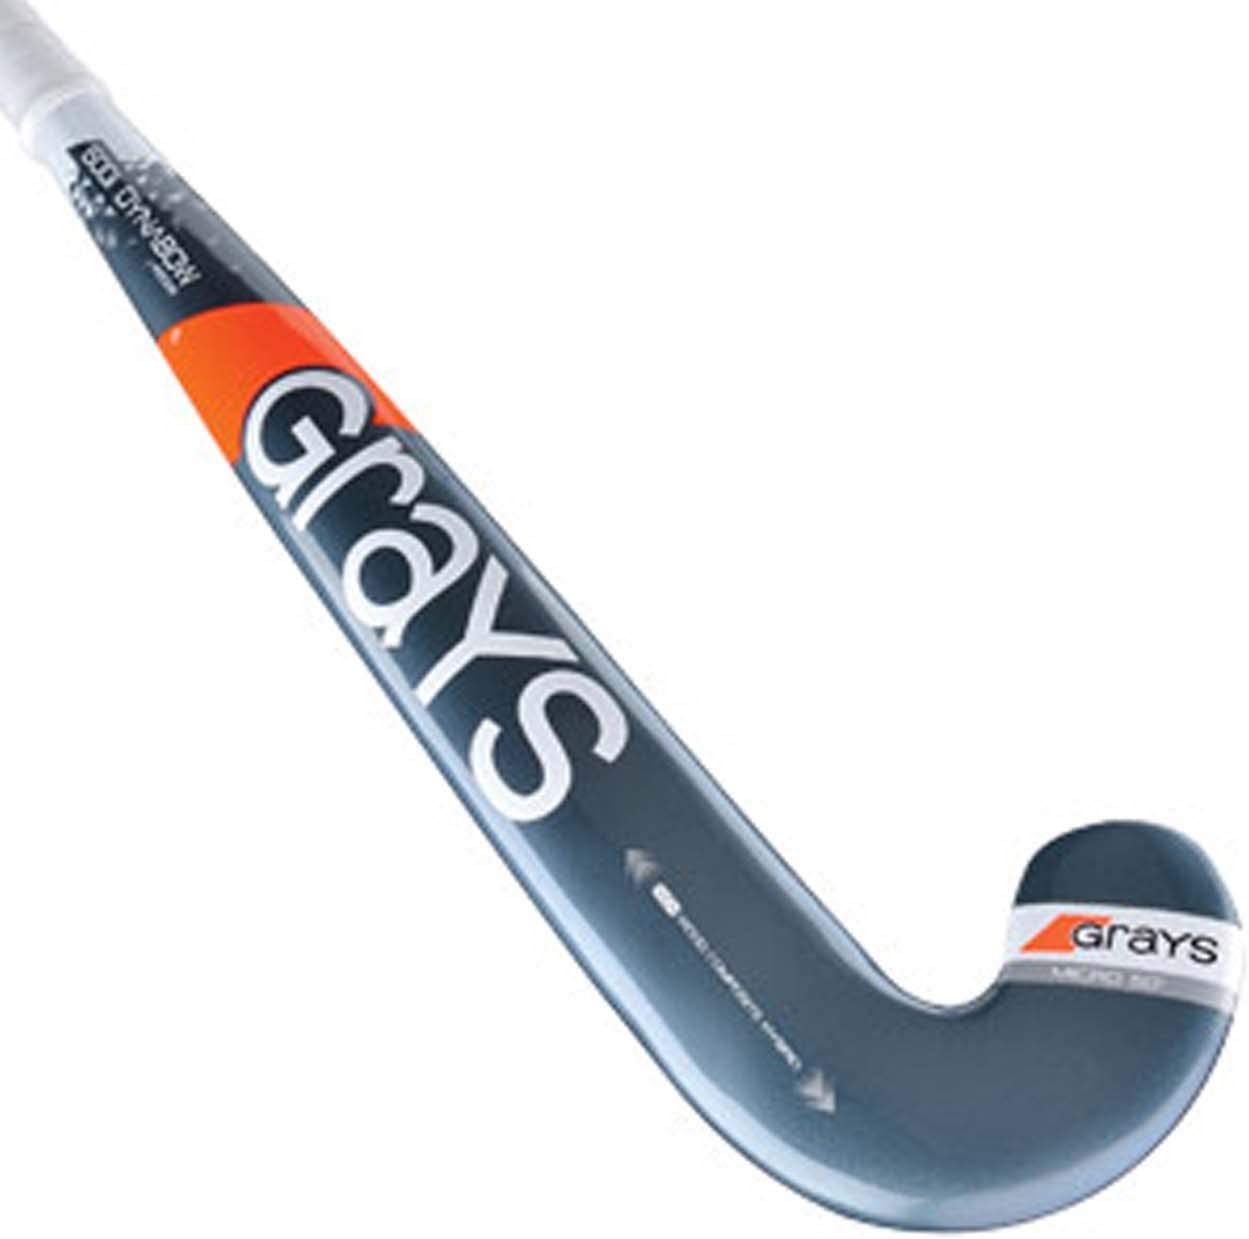 GRAYS 600i Dynabow Sticks Size: 35 Inches Grey : Sports & Outdoors